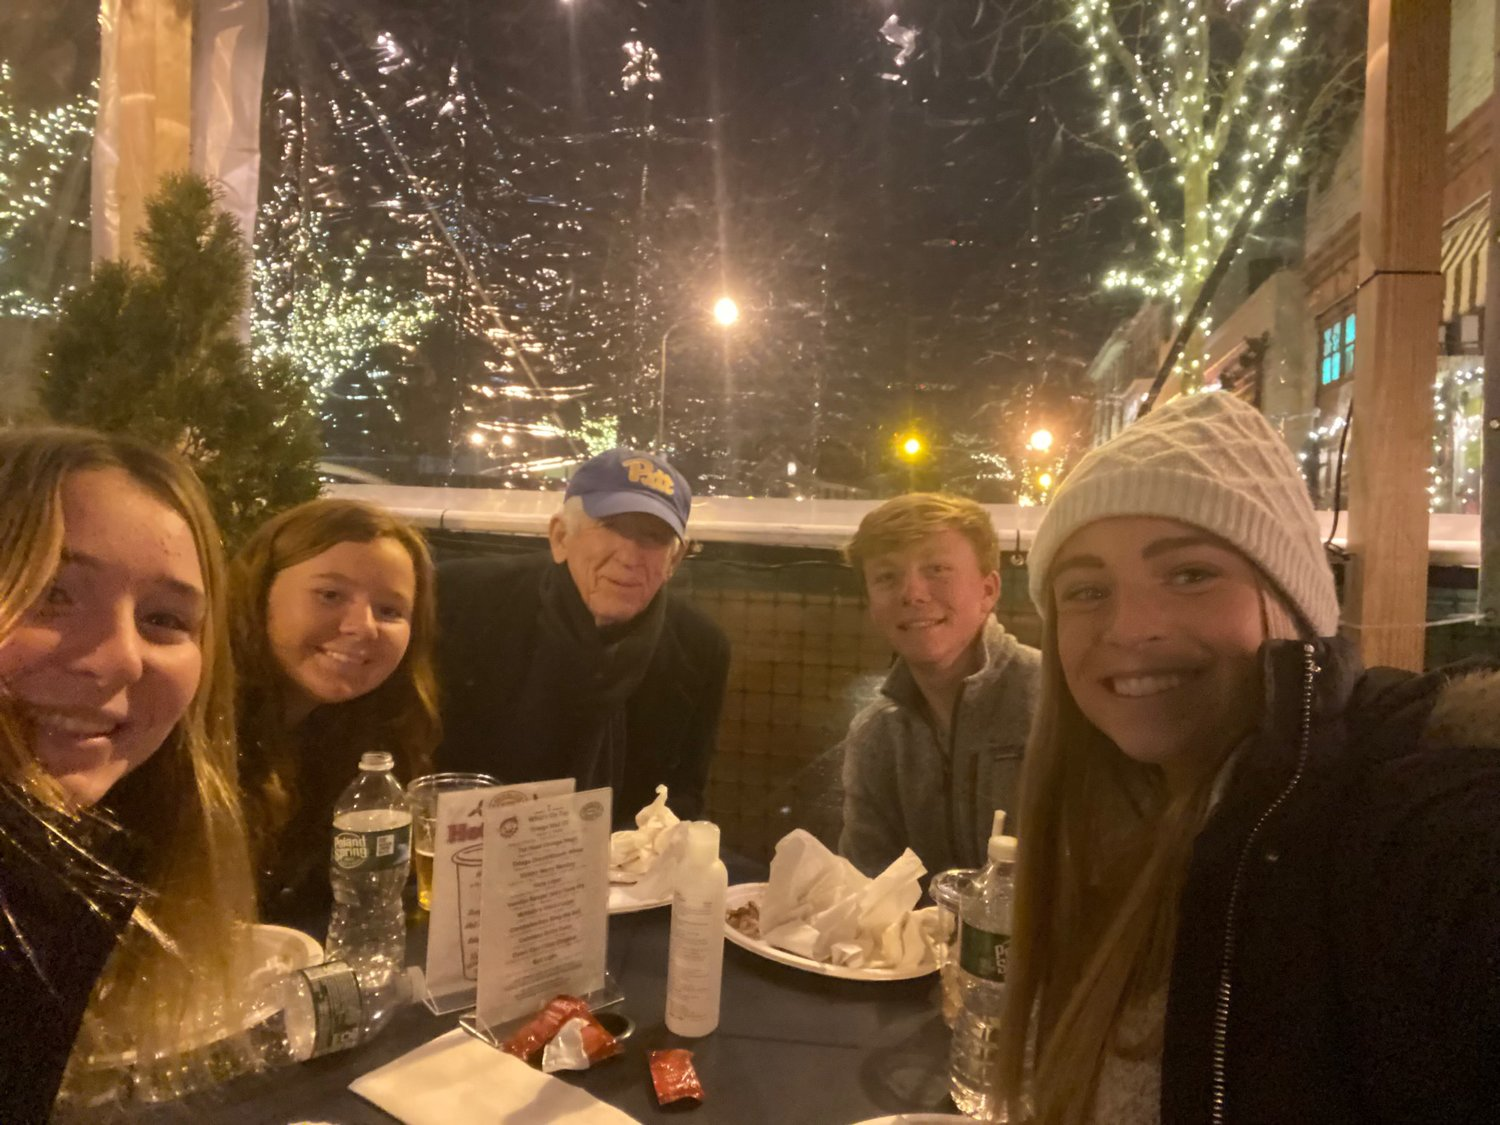 The Maher family dines in the outdoor tent recently at McNallys.